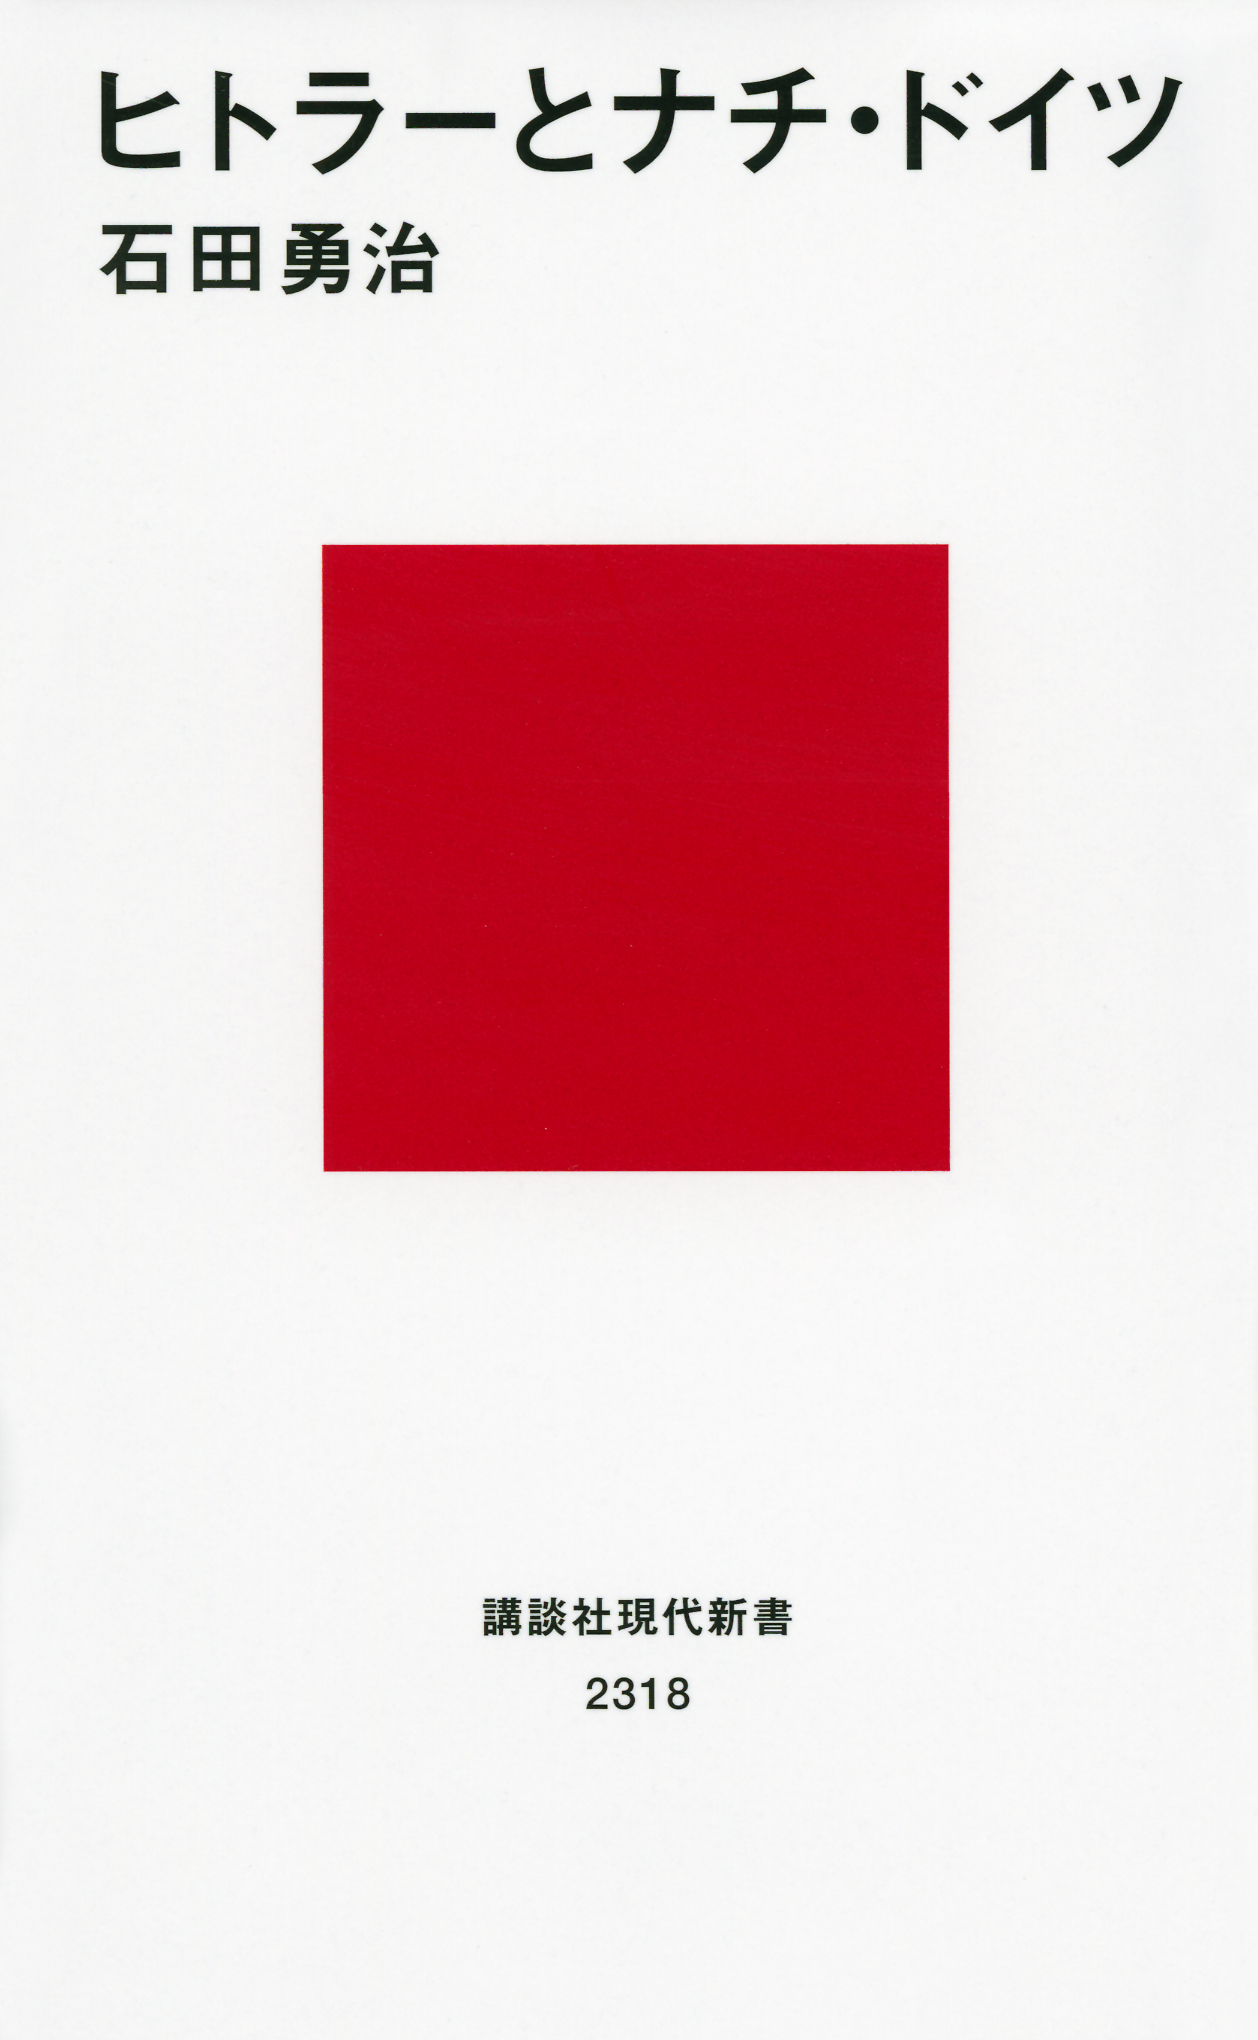 A simple red square on white cover